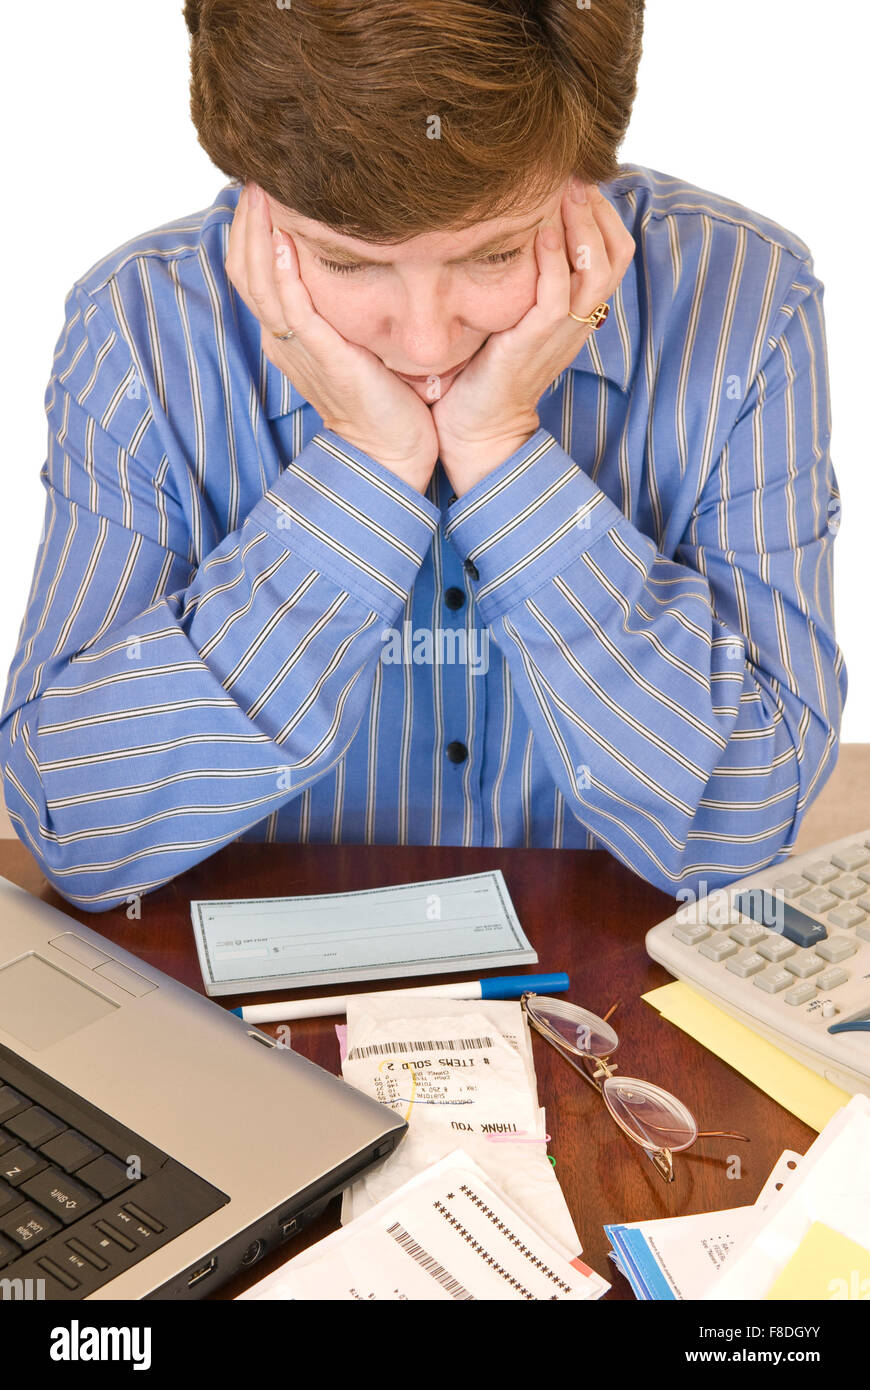 A middle aged woman holding her head in her hands having financial worries. - Stock Image